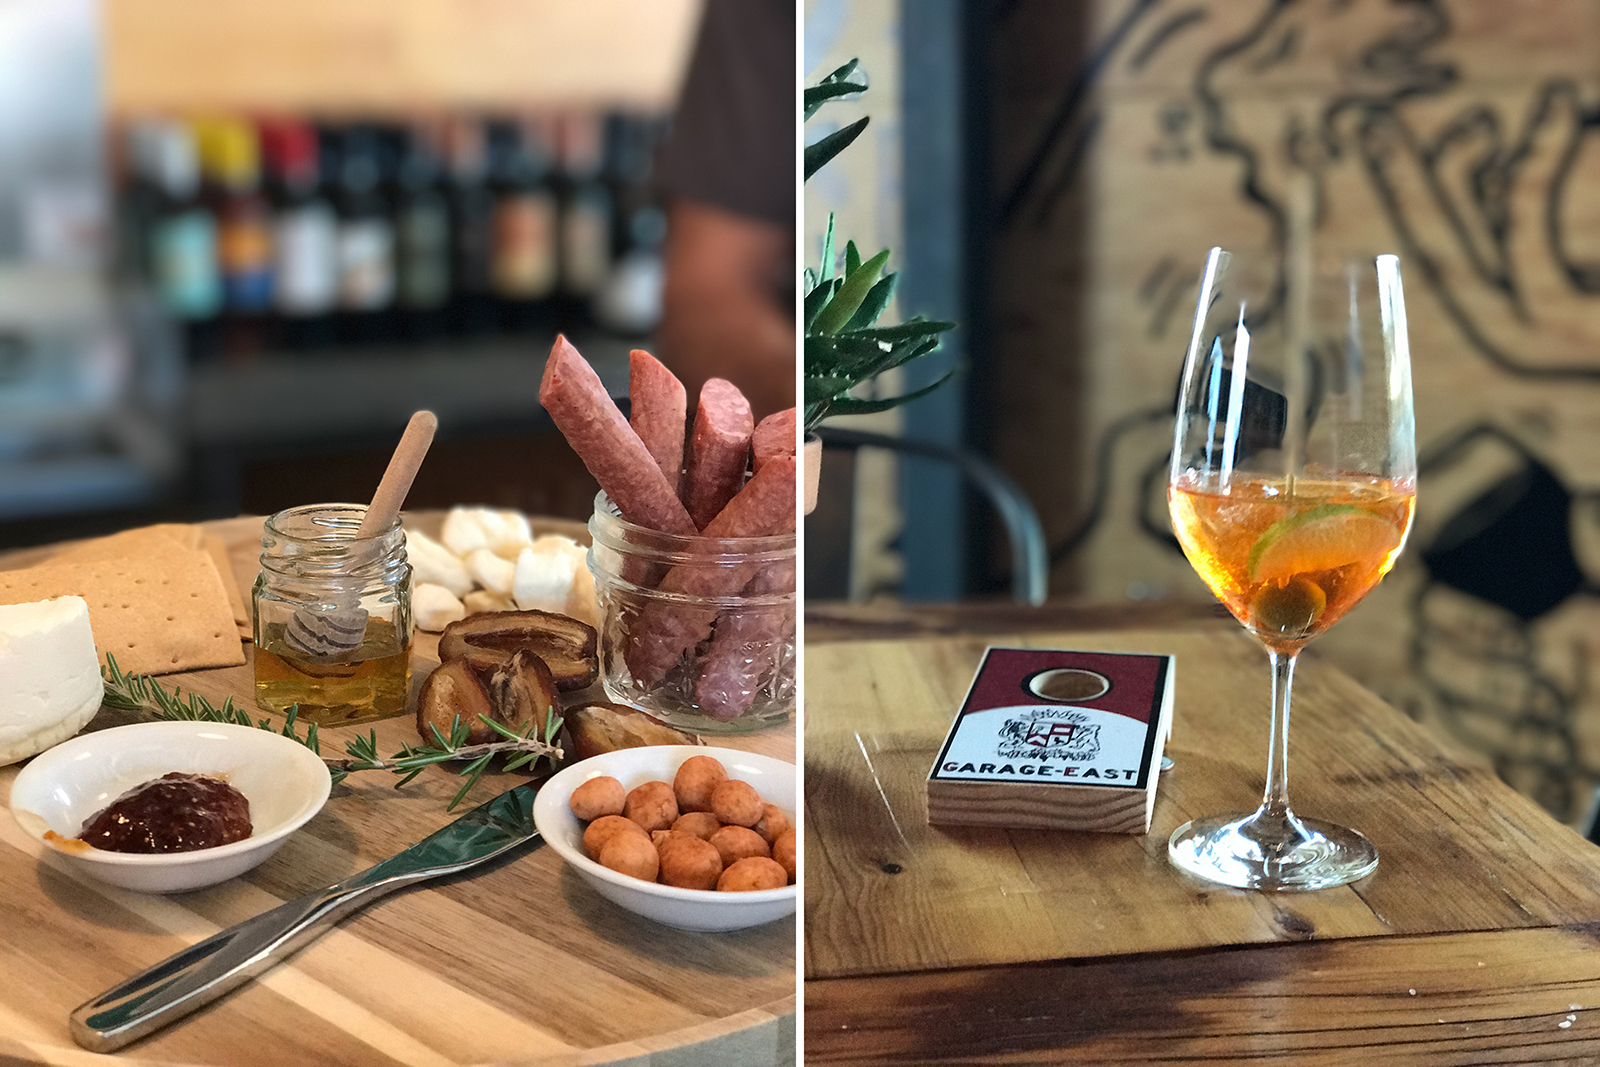 Charcuterie and cocktails at barnone and Garage-east at agritopia, mesa, arizona